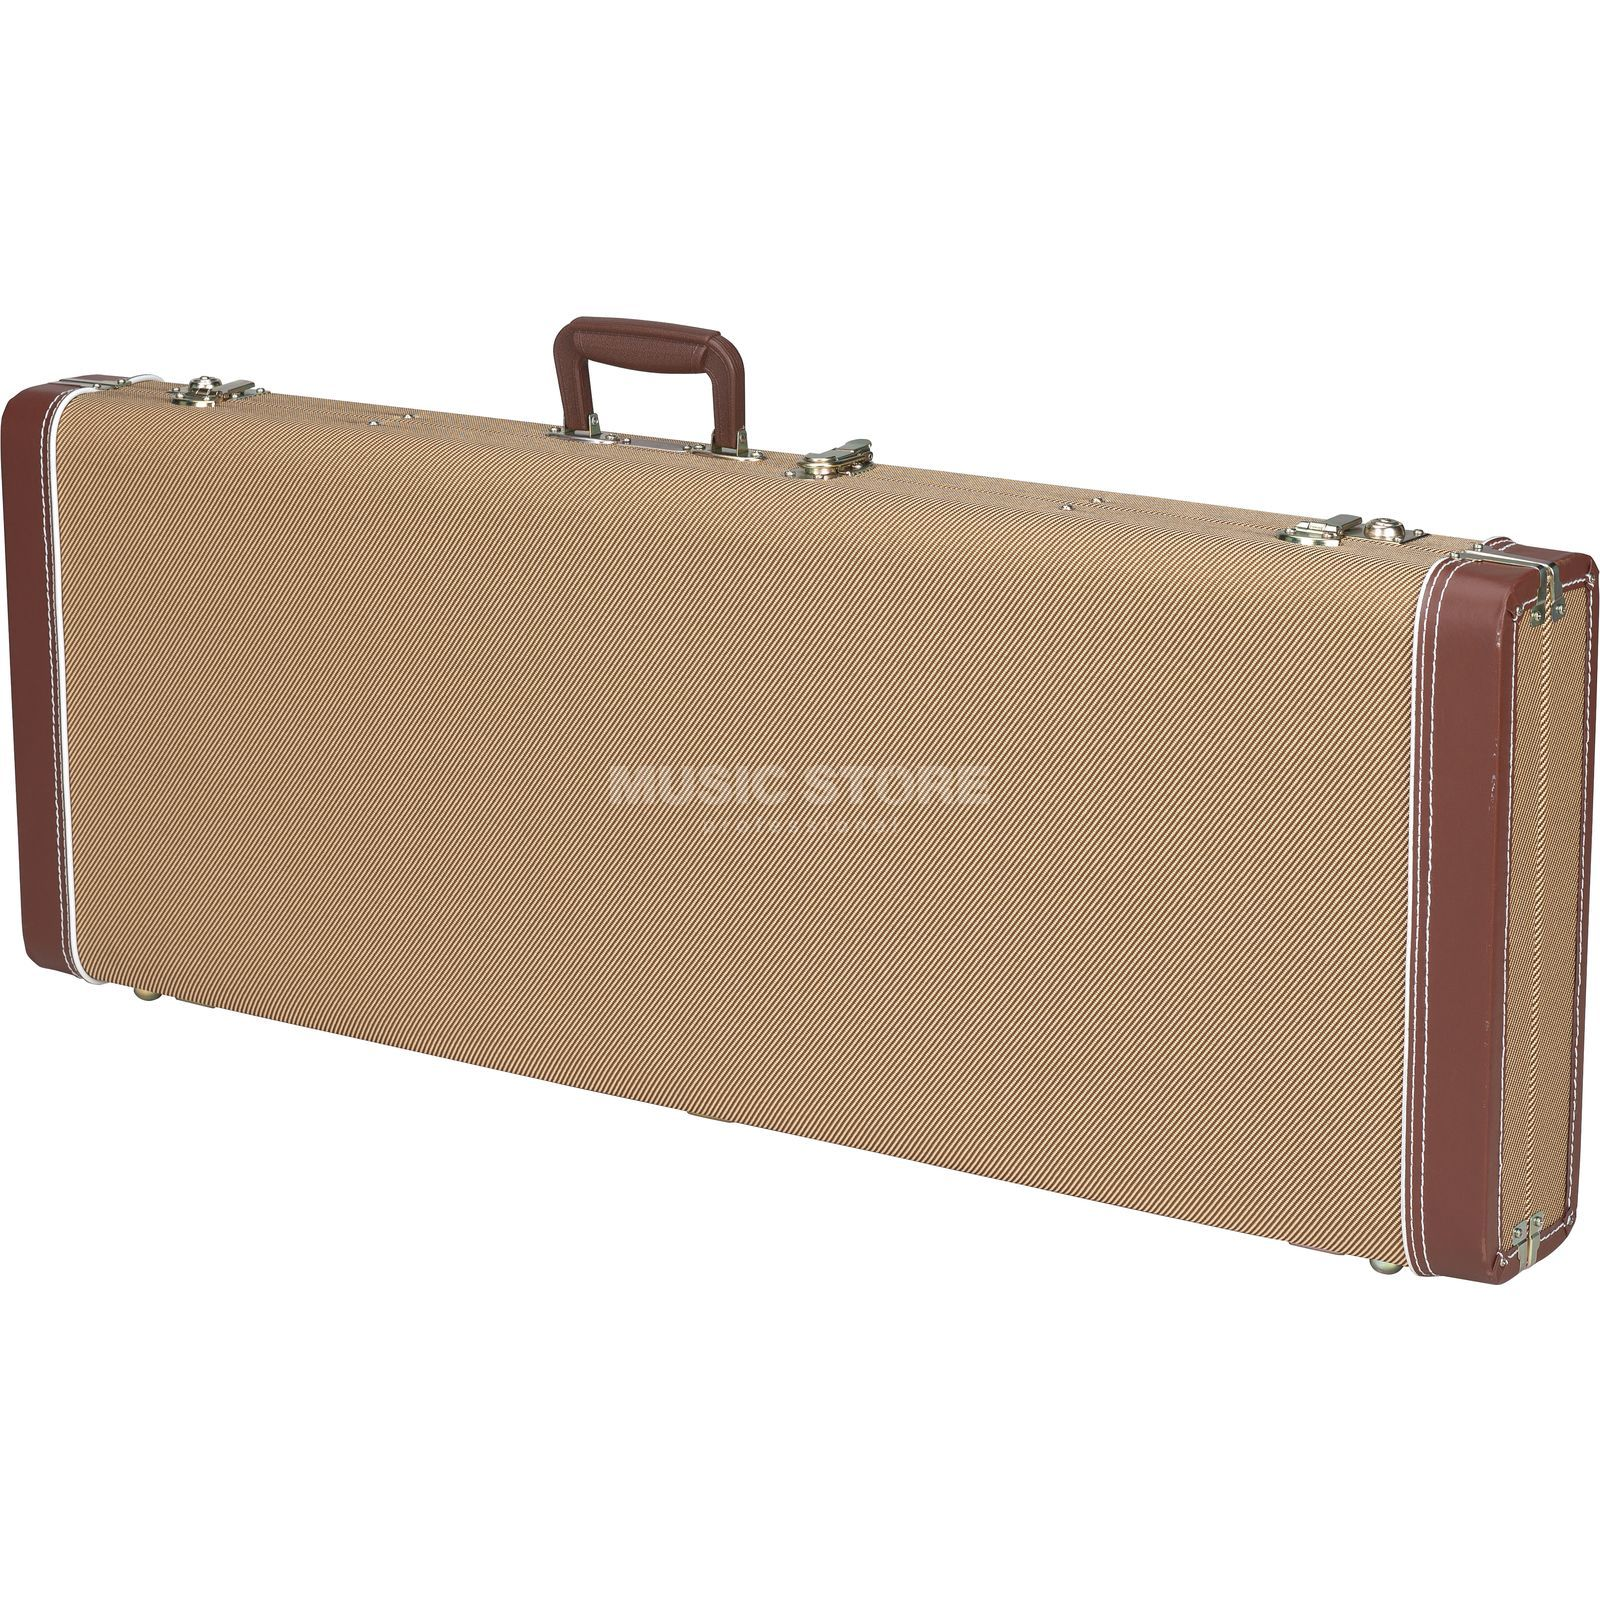 Fender case Pro Series P+J-bas Tweed Woodcase Tweed Productafbeelding